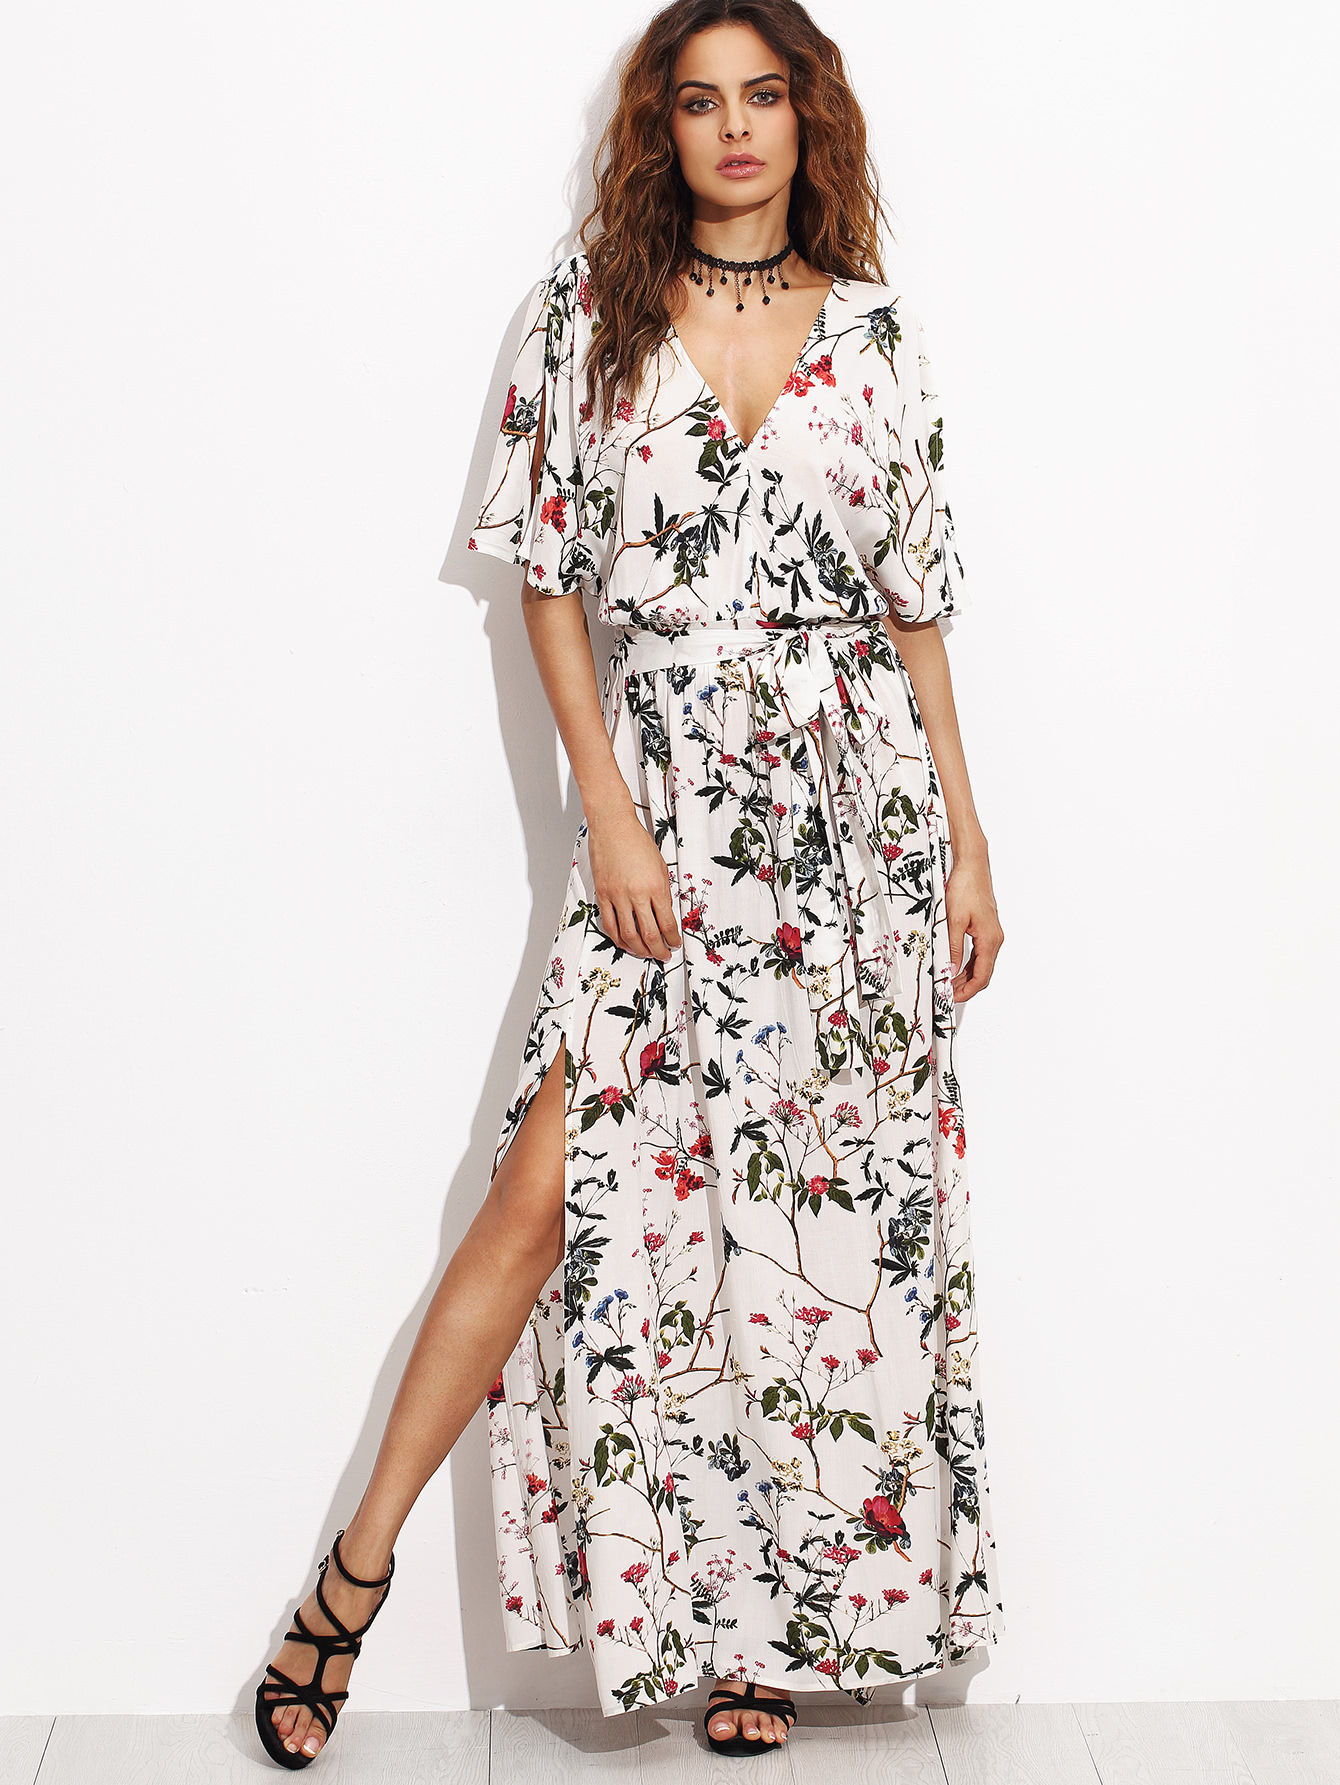 My wish list of fashion outfits from Romwe under 25$